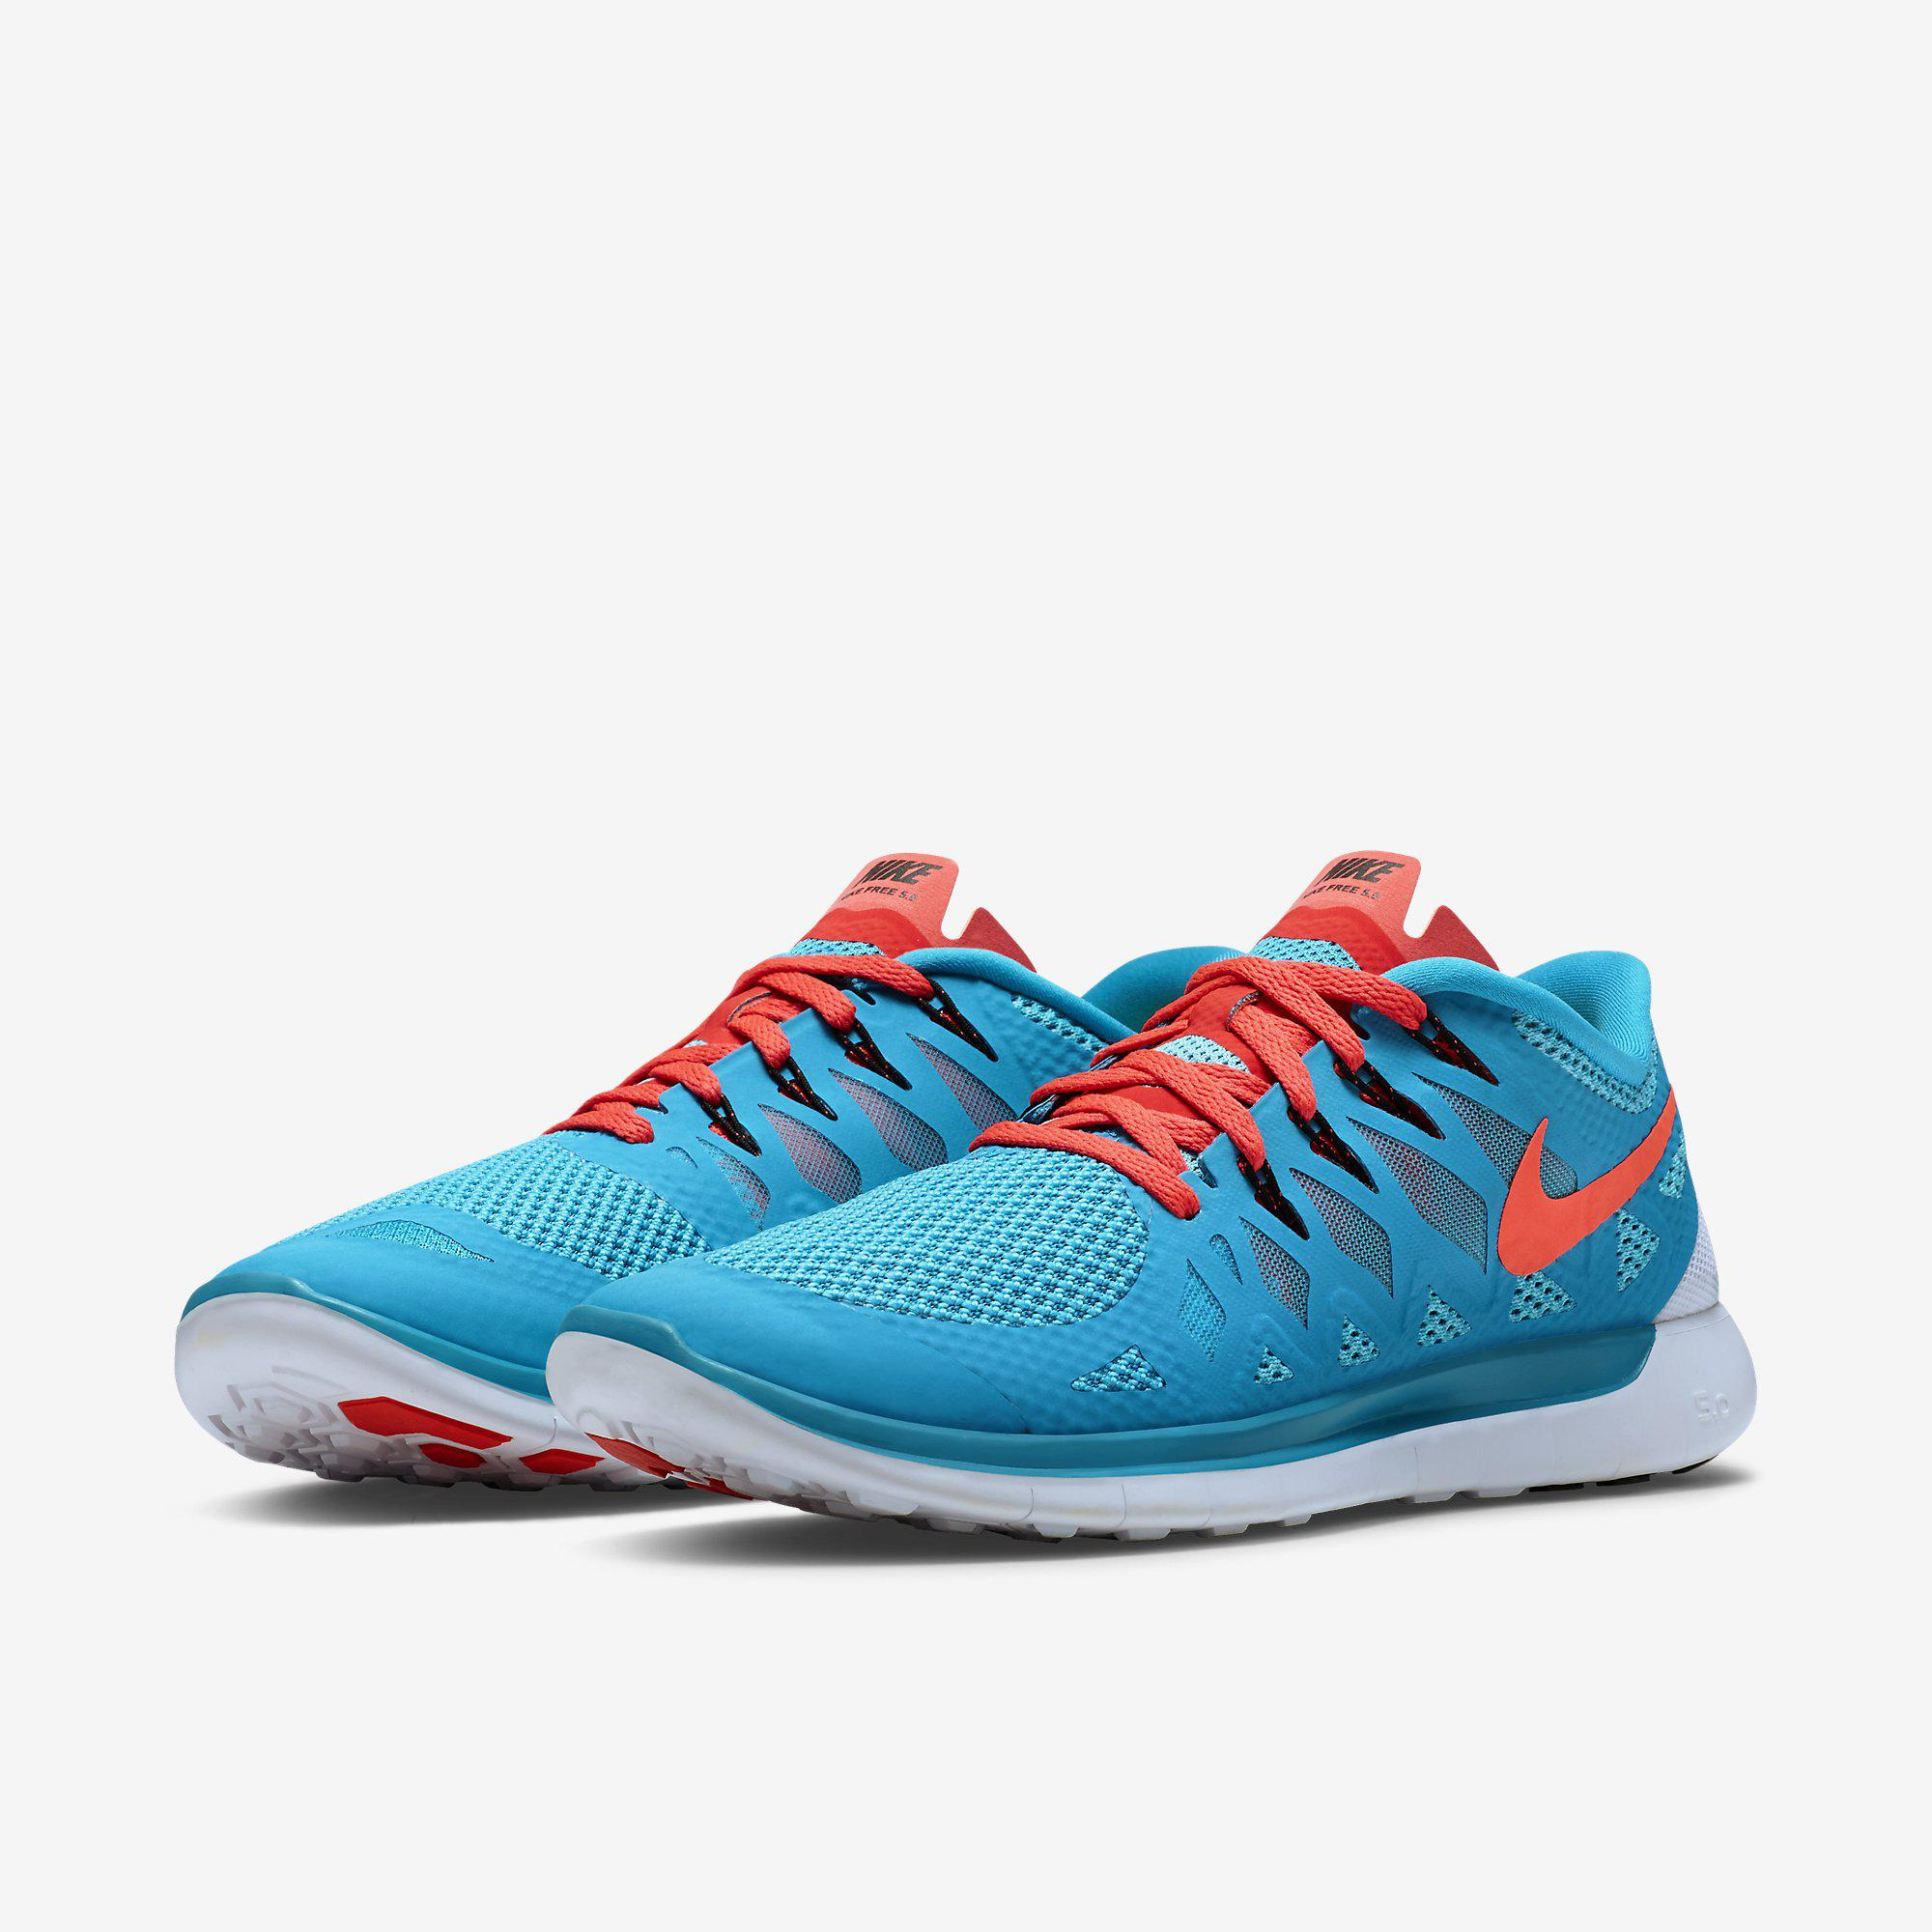 sale retailer 3ba42 b65d5 Nike Mens Free 5.0+ Running Shoes - Blue Lagoon/Bright Crimson ...